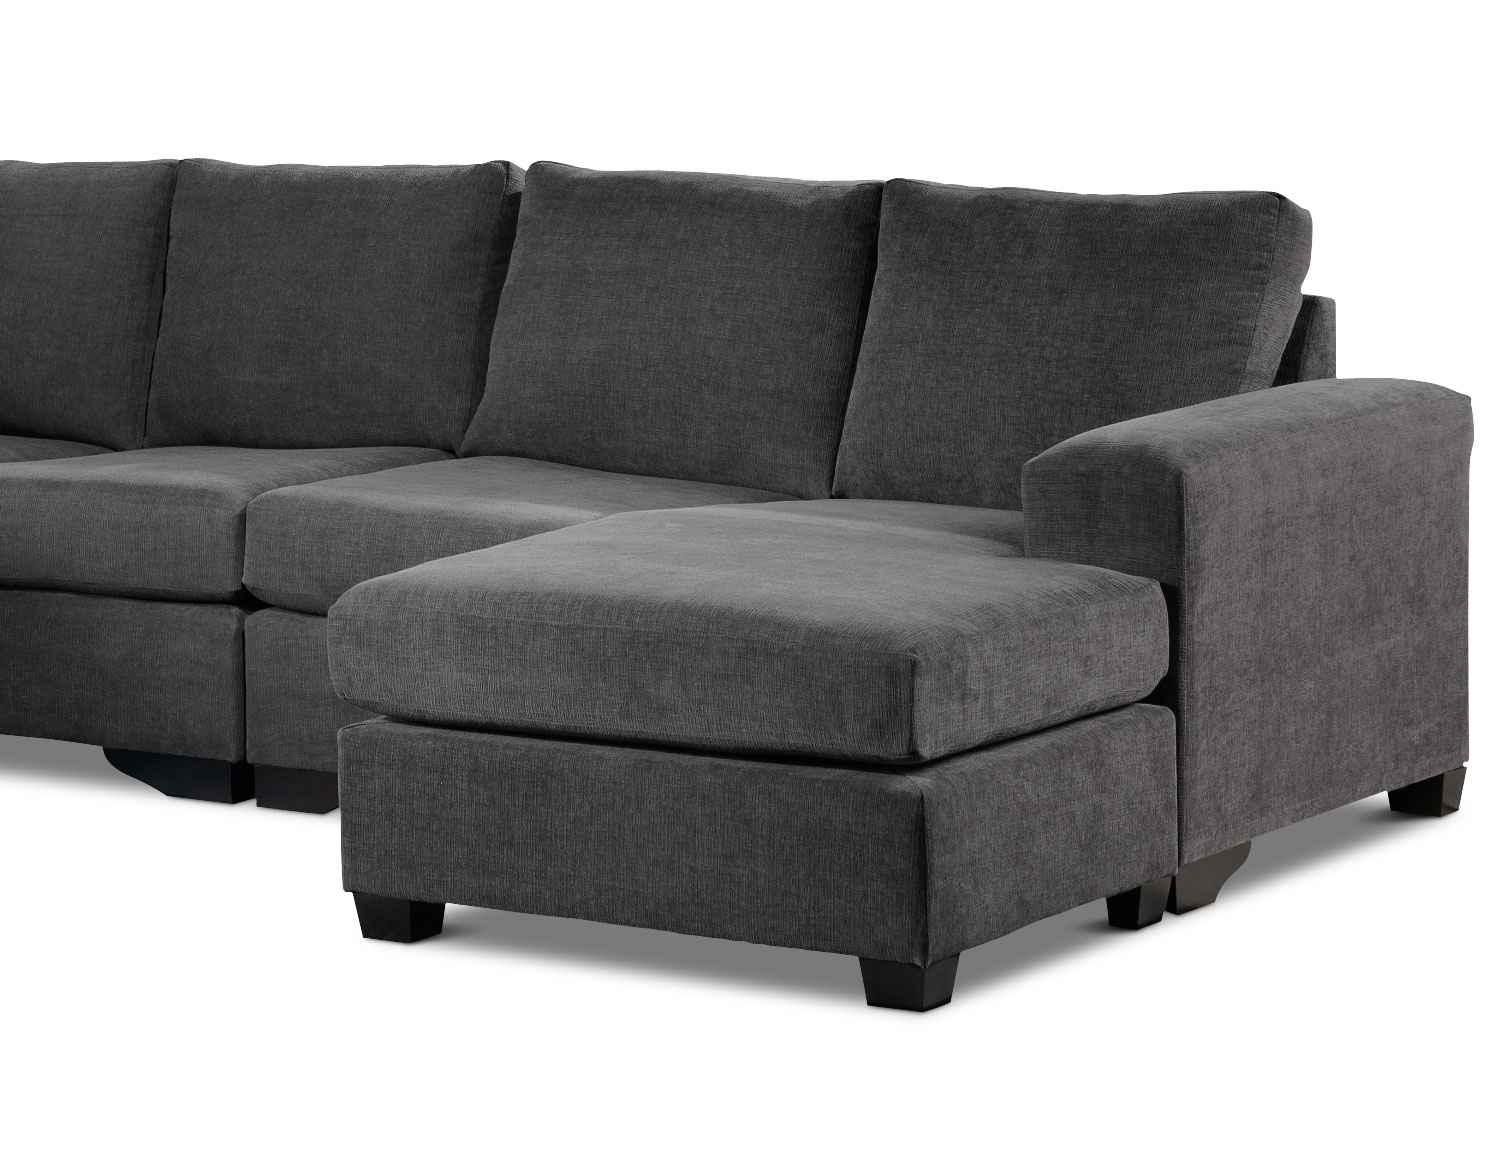 Danielle 3 Piece Sectional With Right Facing Corner Wedge – Grey Intended For Leons Sectional Sofas (Image 2 of 10)